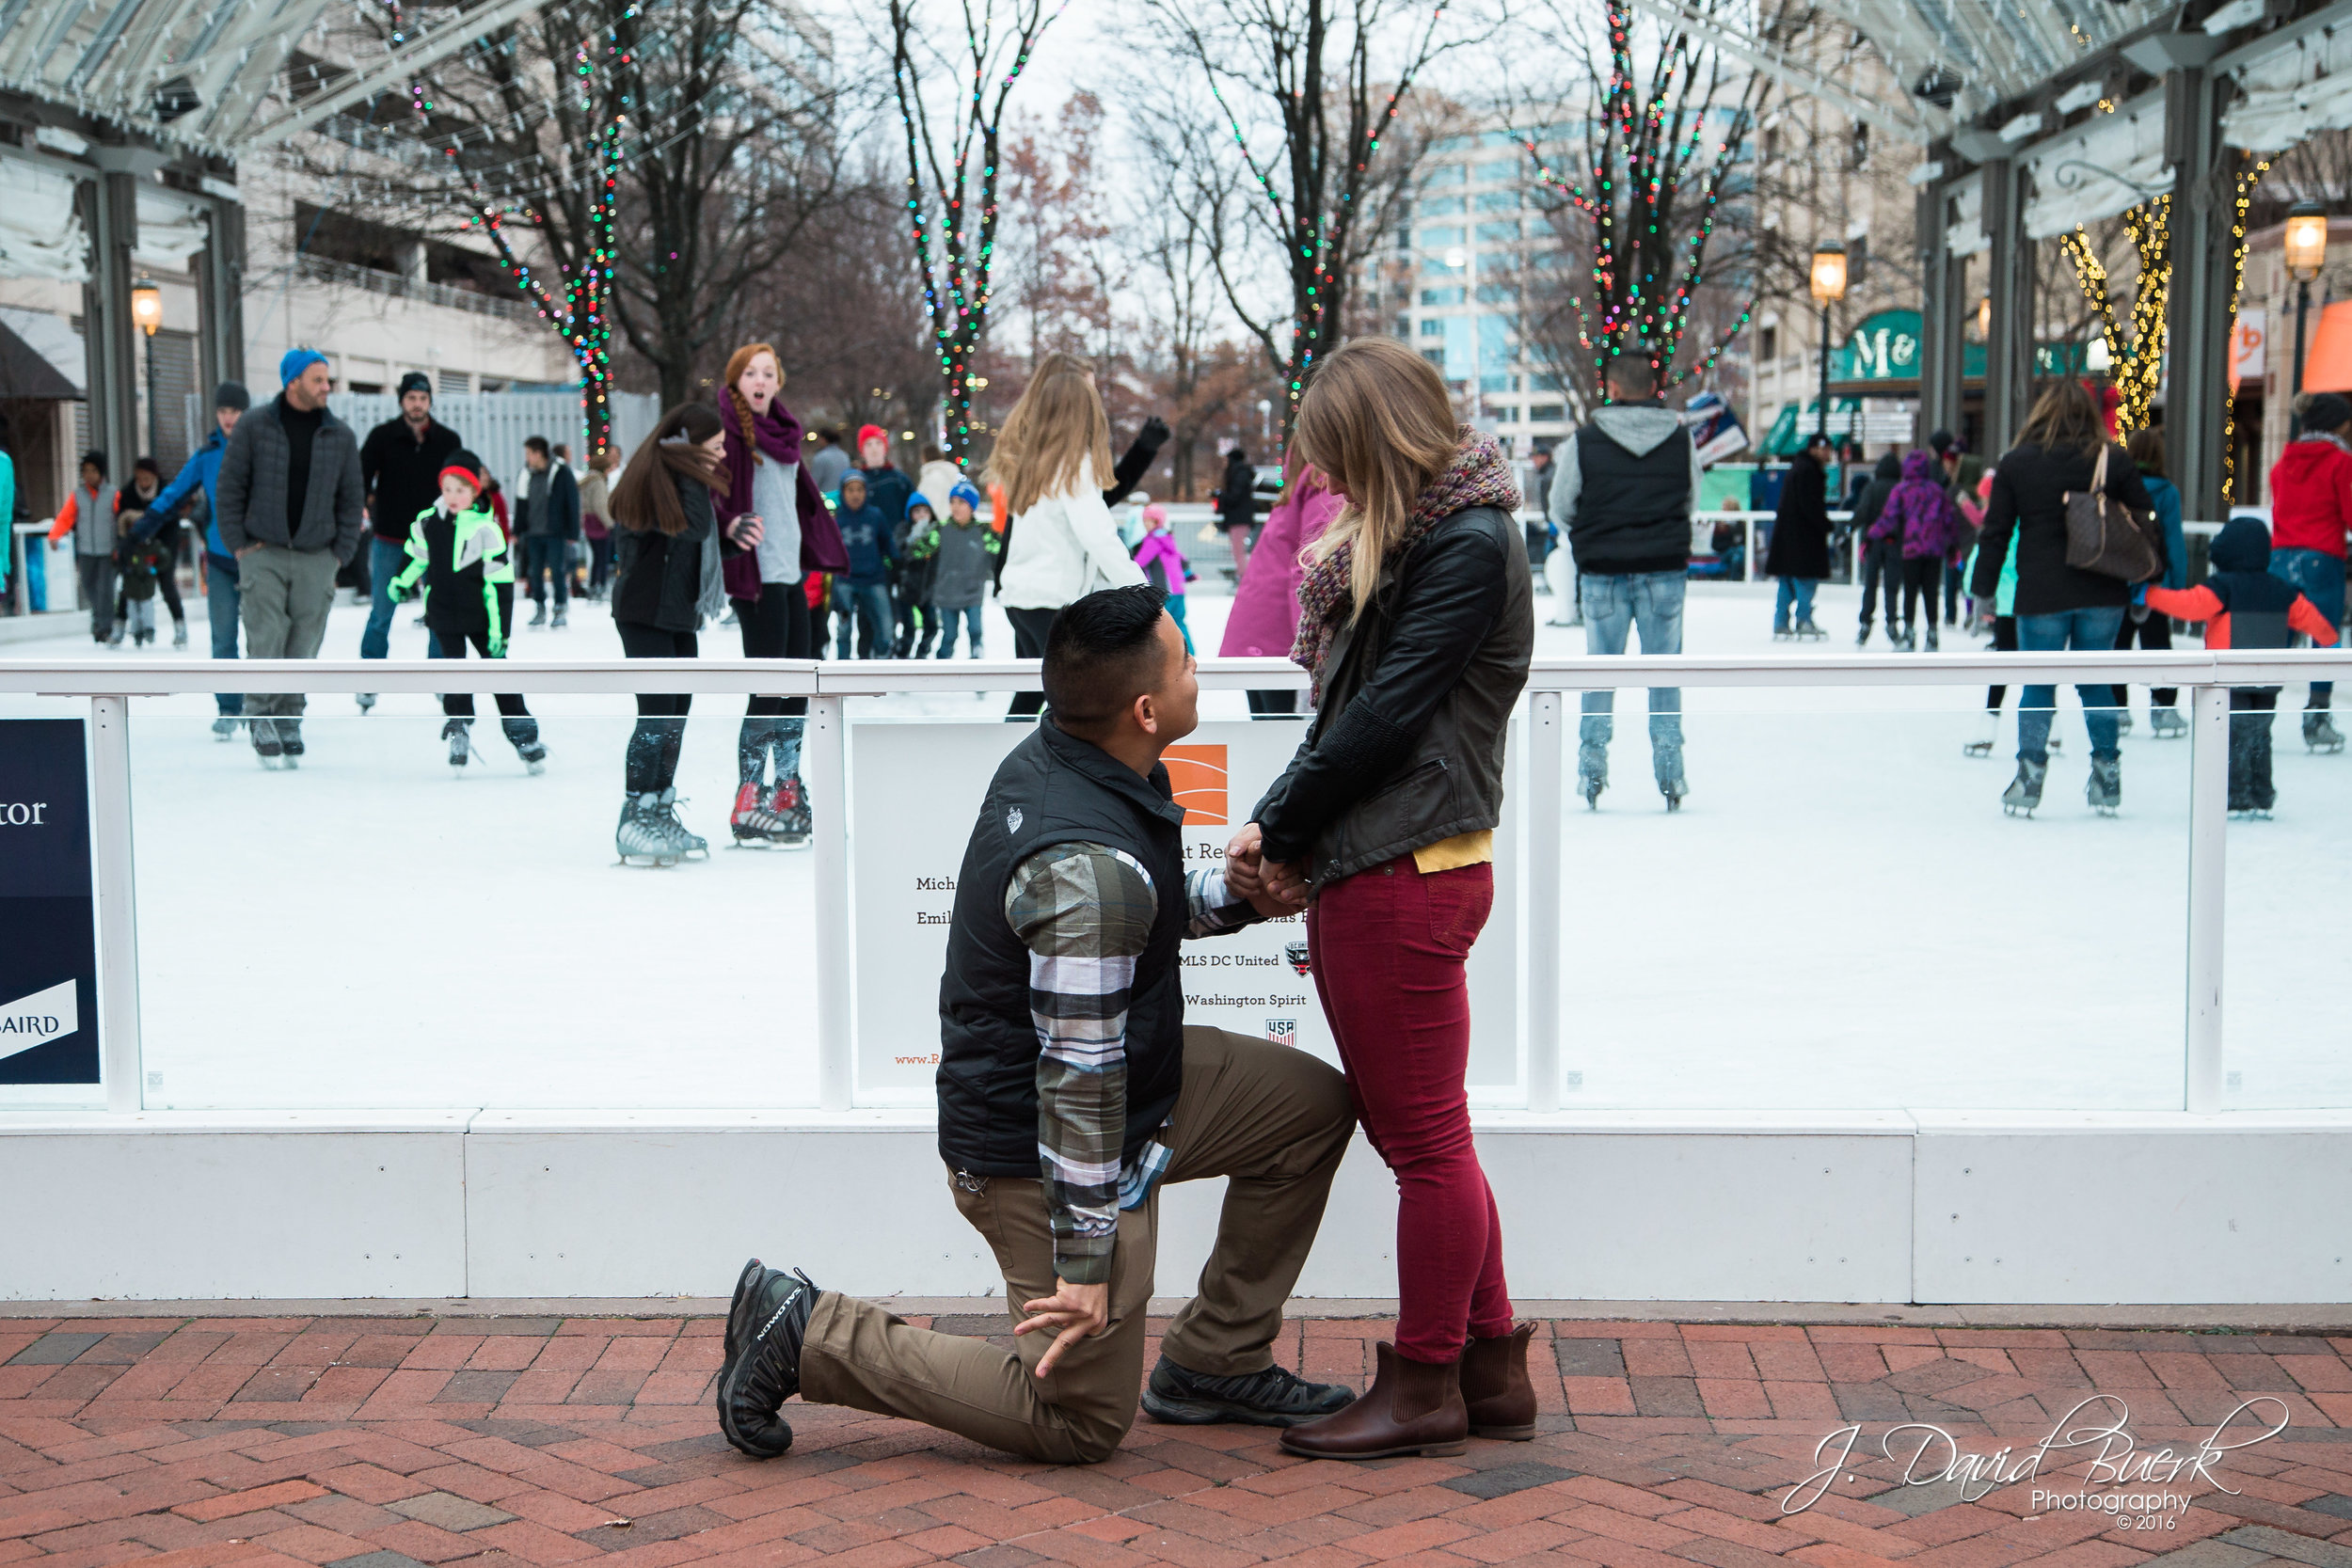 Leo surprises Chelsea with a marriage proposal at the skating rink at Reston Town Center, Reston, Virginia.  She said yes!